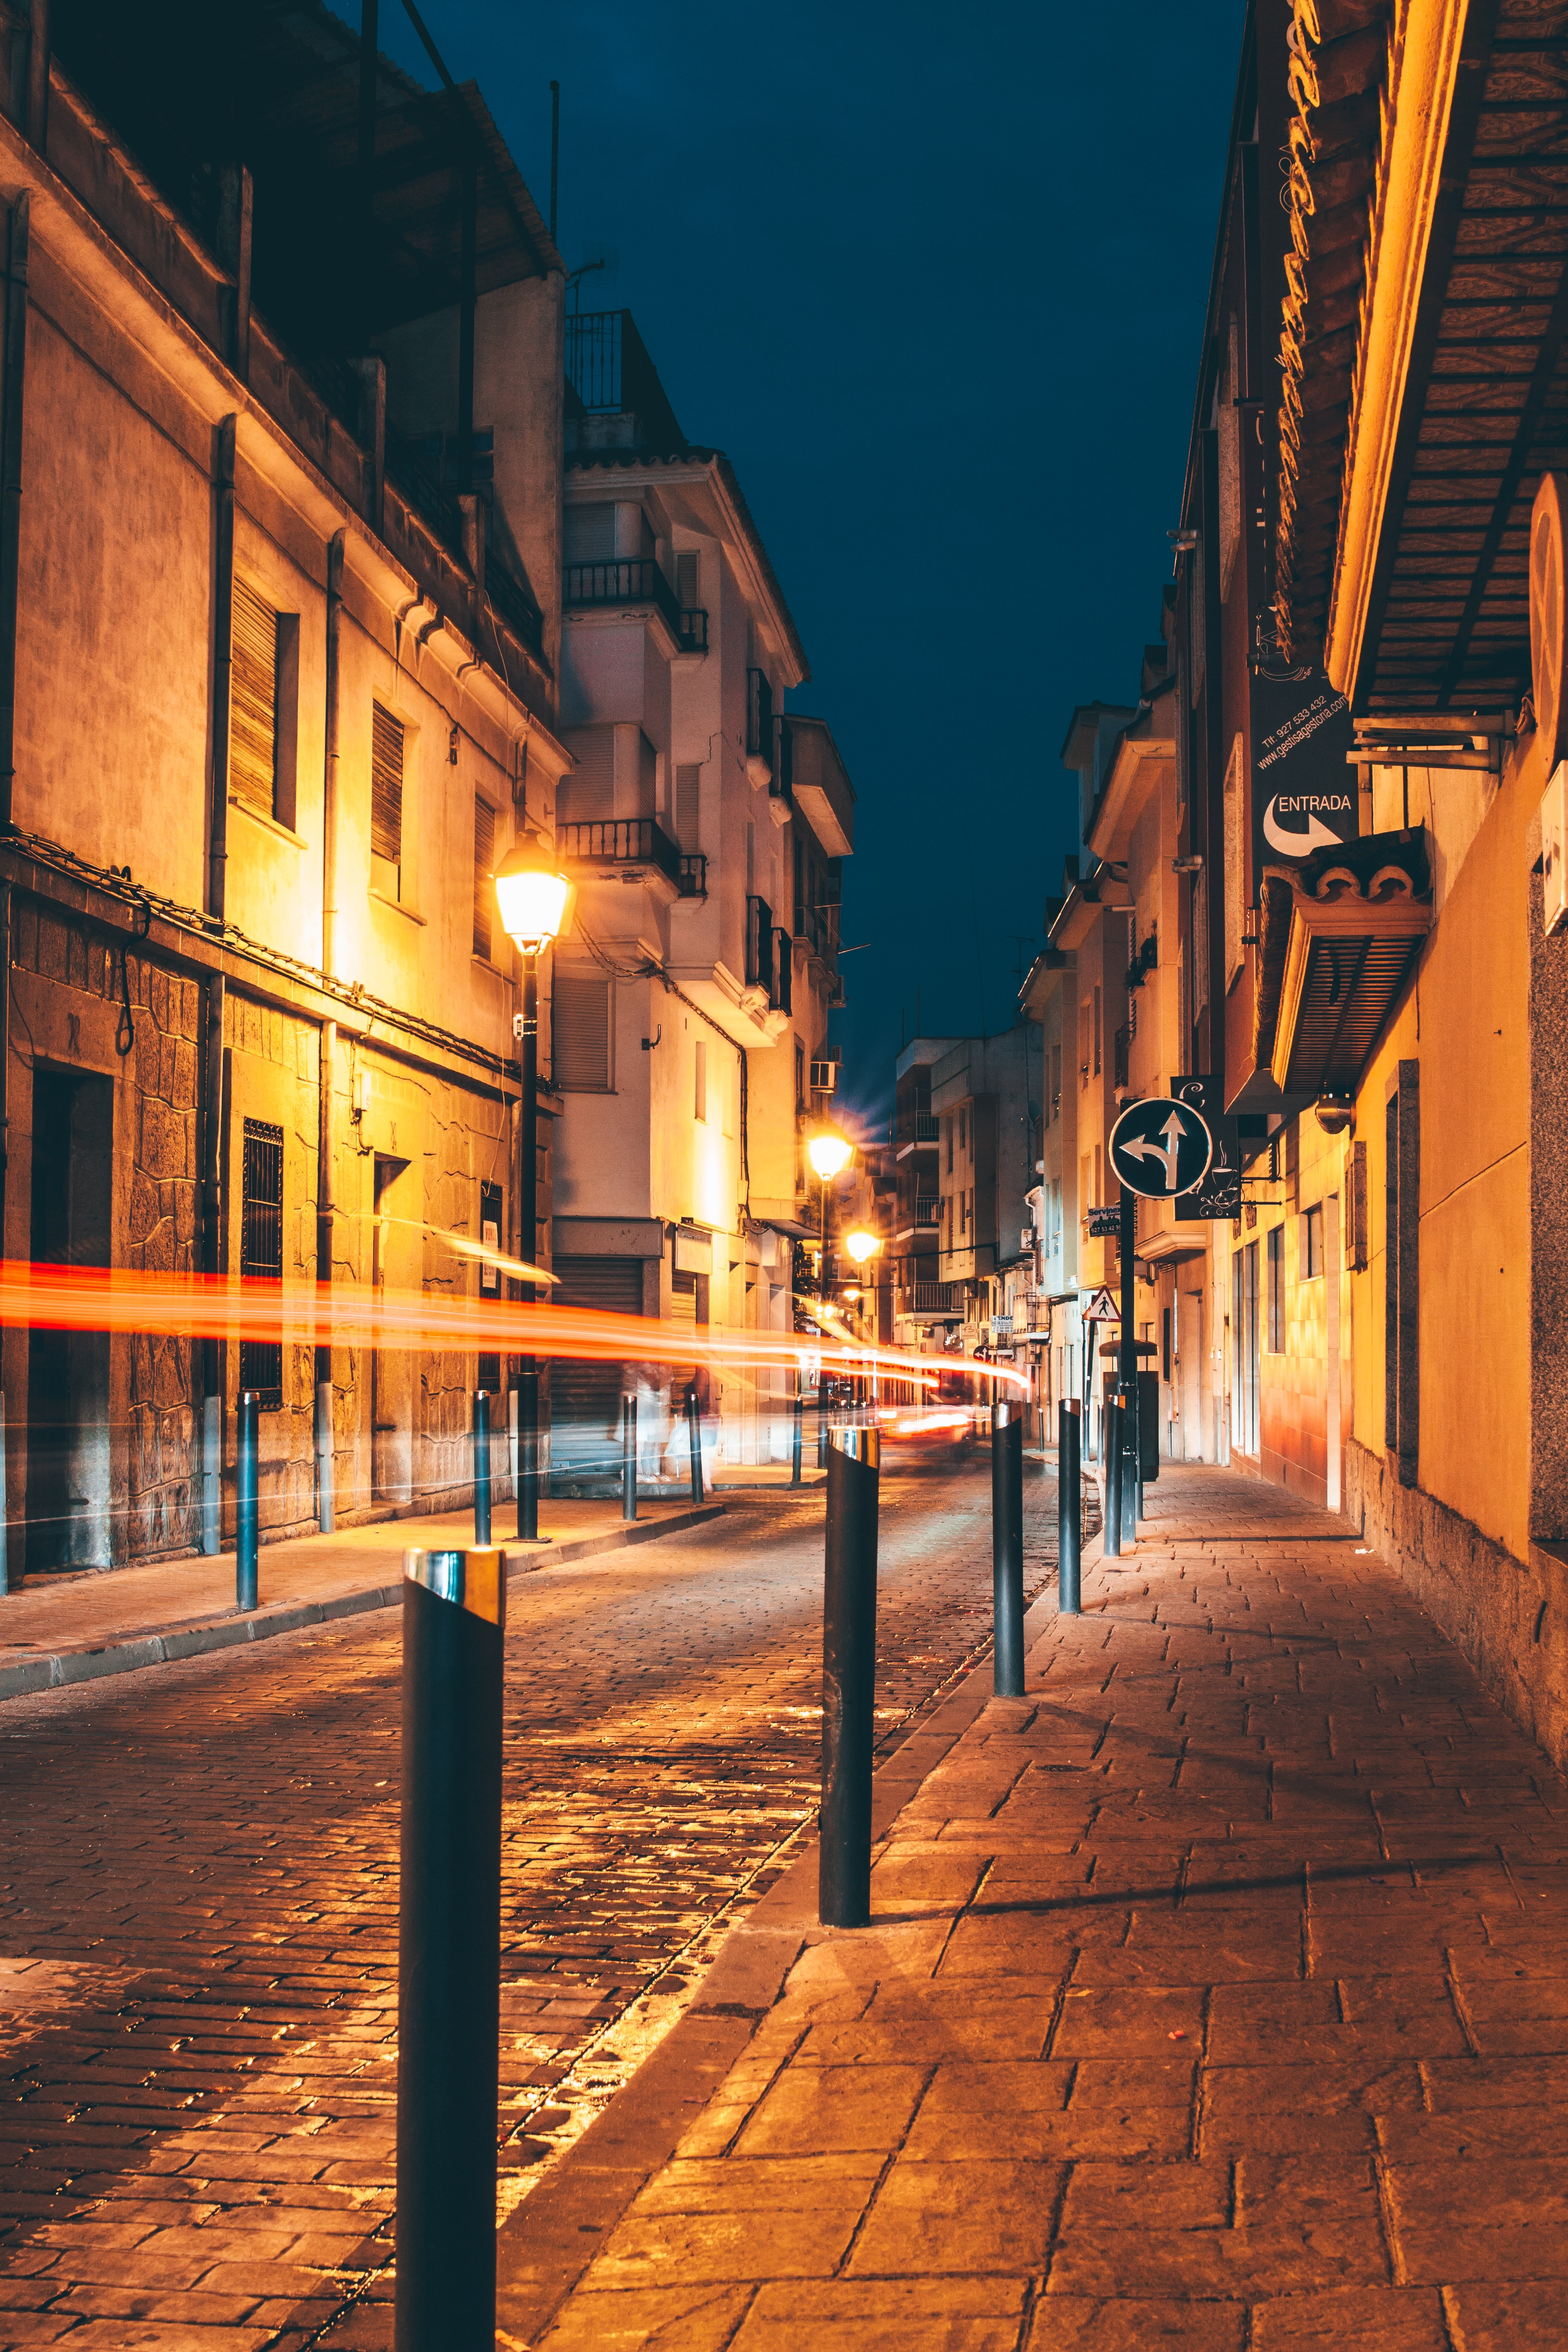 An early night shot of a street and the sidewalk in a historic part of town